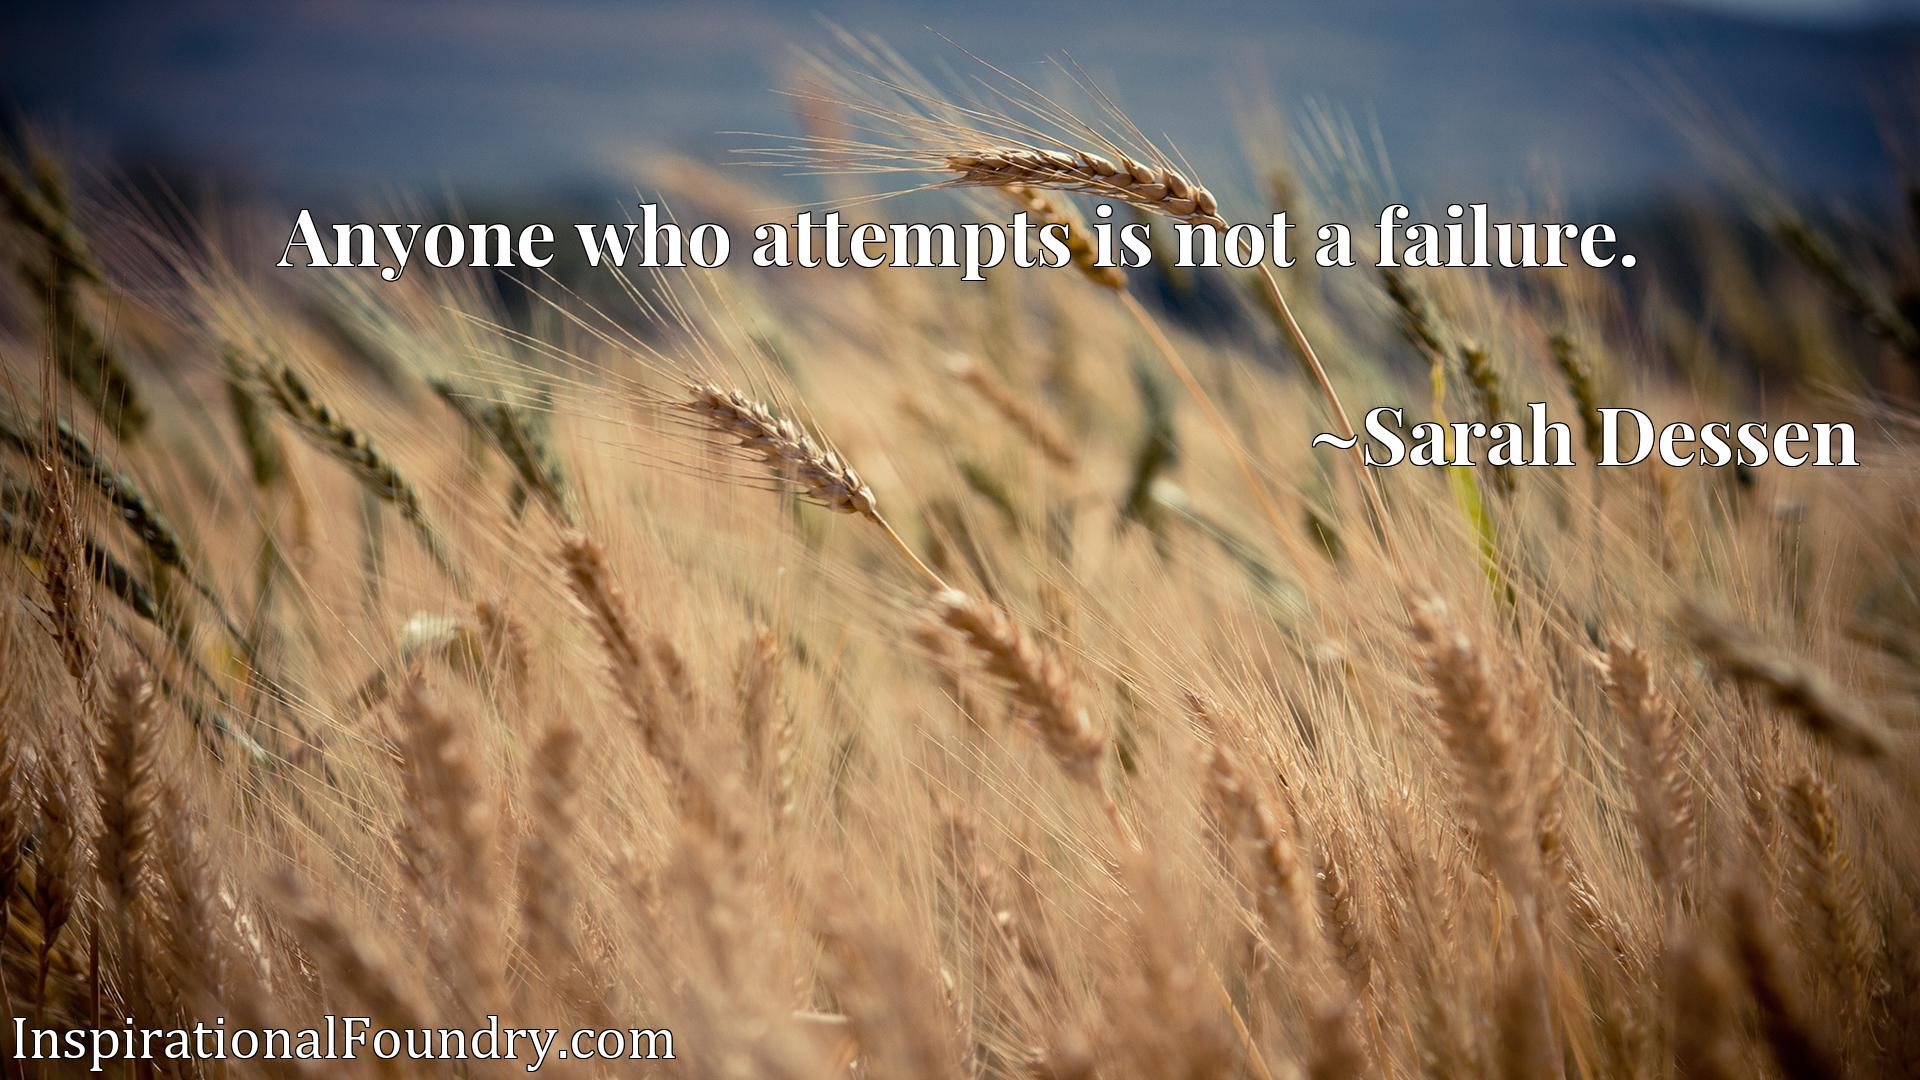 Anyone who attempts is not a failure.